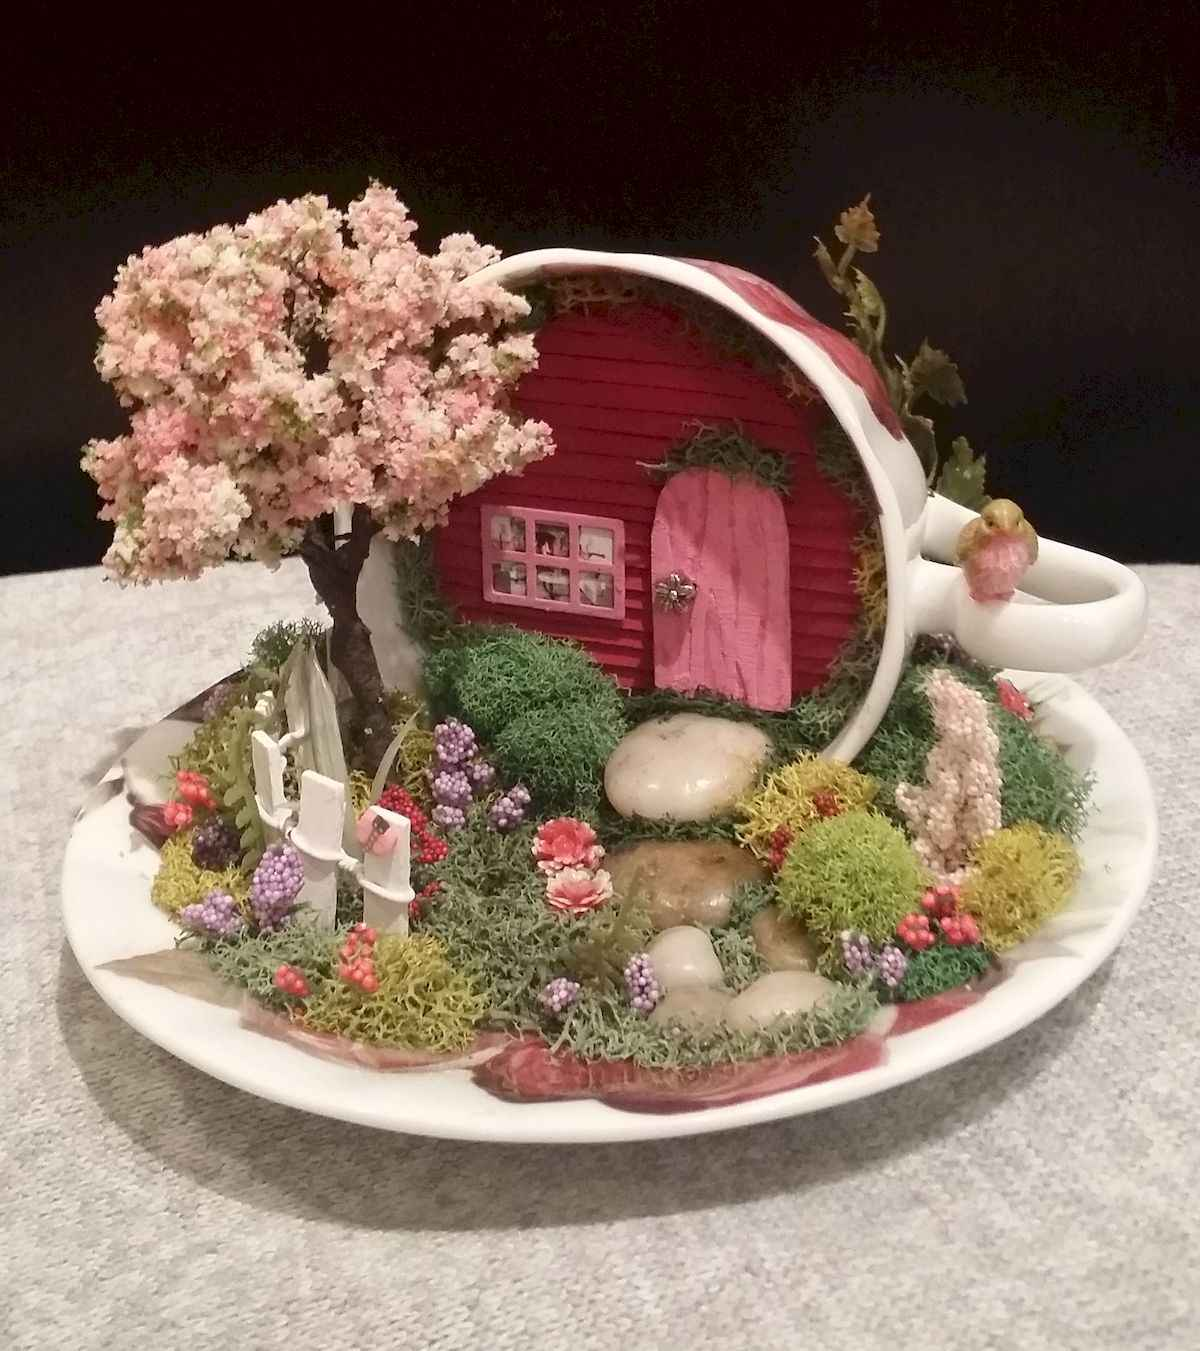 50 easy diy summer gardening teacup fairy garden ideas (46)